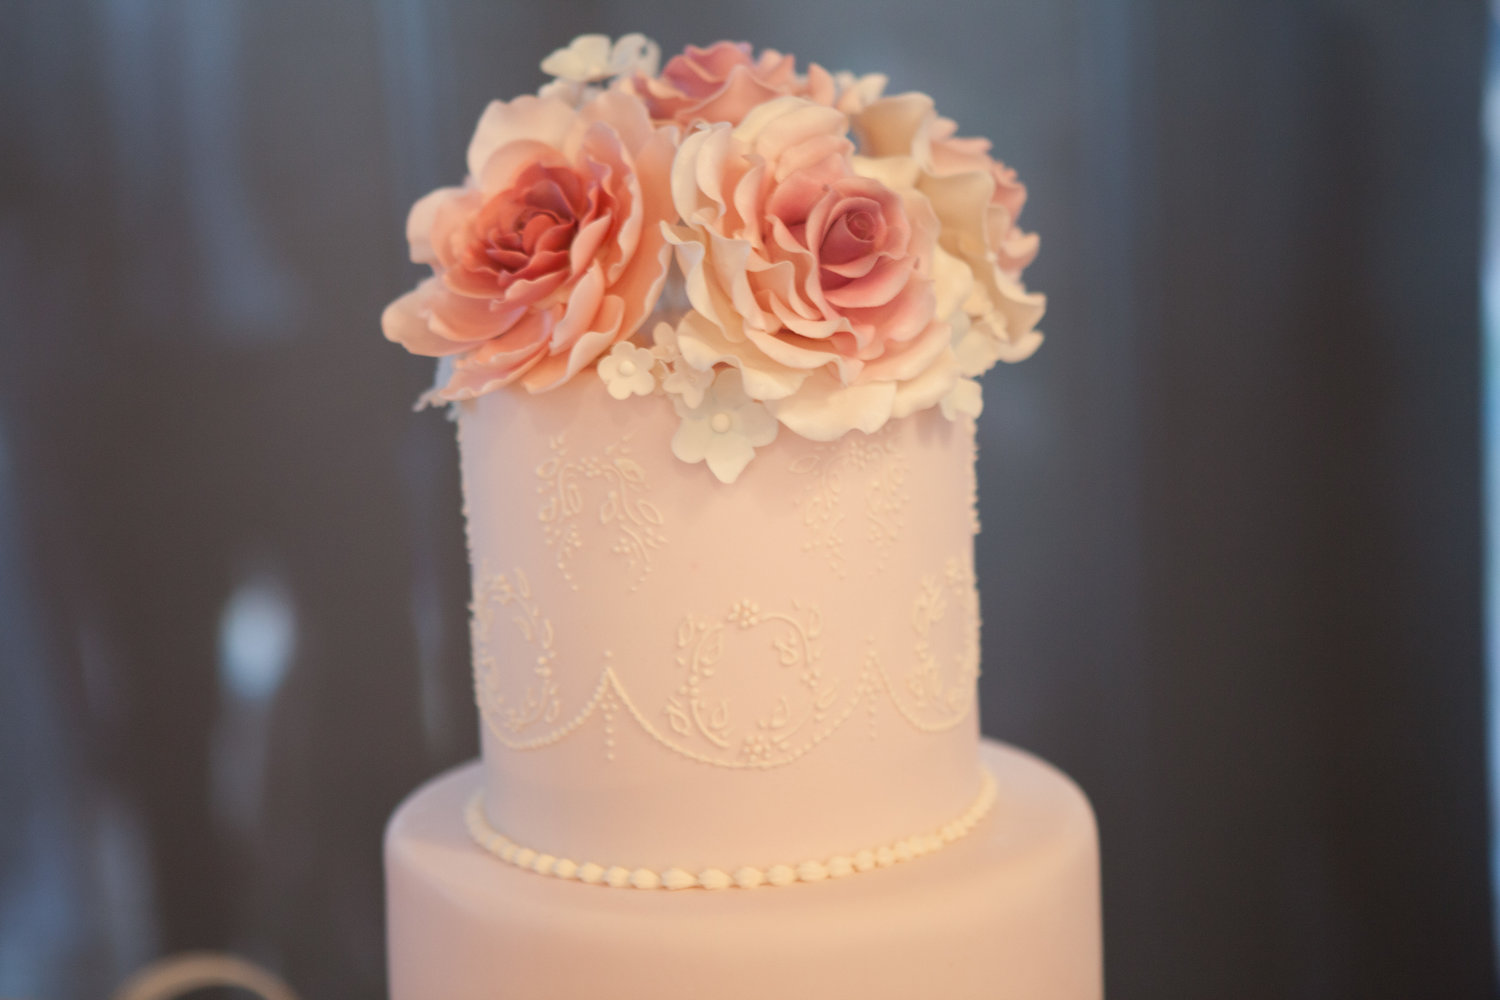 Wedding cakes perth the sweeter side cakes wedding cakes perth junglespirit Choice Image